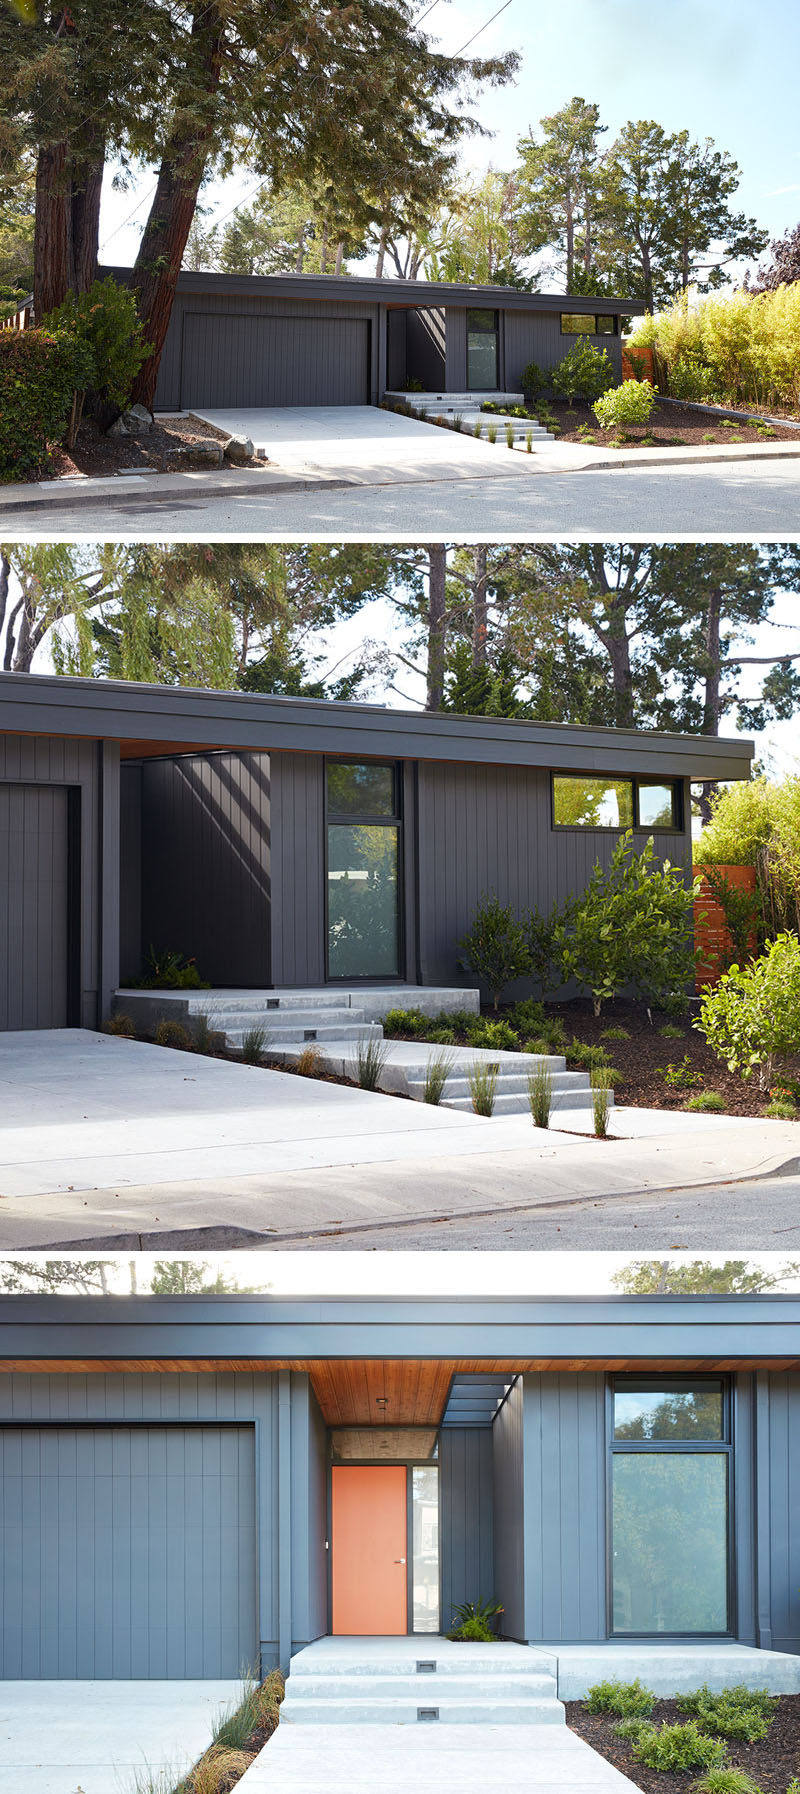 This new home in San Mateo Highlands, California, has been designed by Klopf Architecture as a replacement house for an original Eichler house that burnt down.